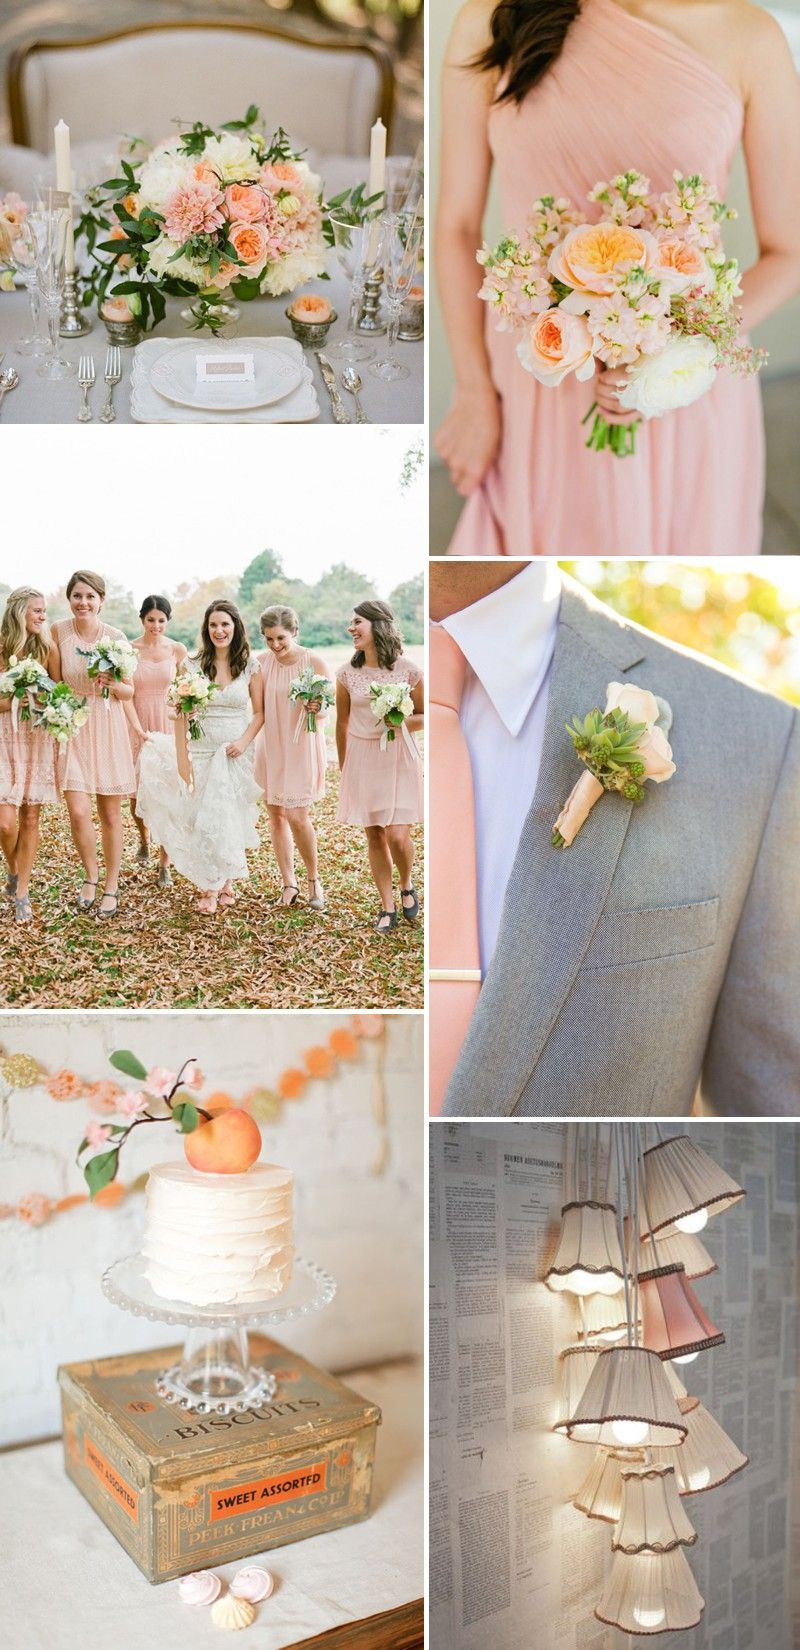 How To Create A Peach Colour Themed Wedding Using Flowers Bridesmaids Cakes And Decor 0004